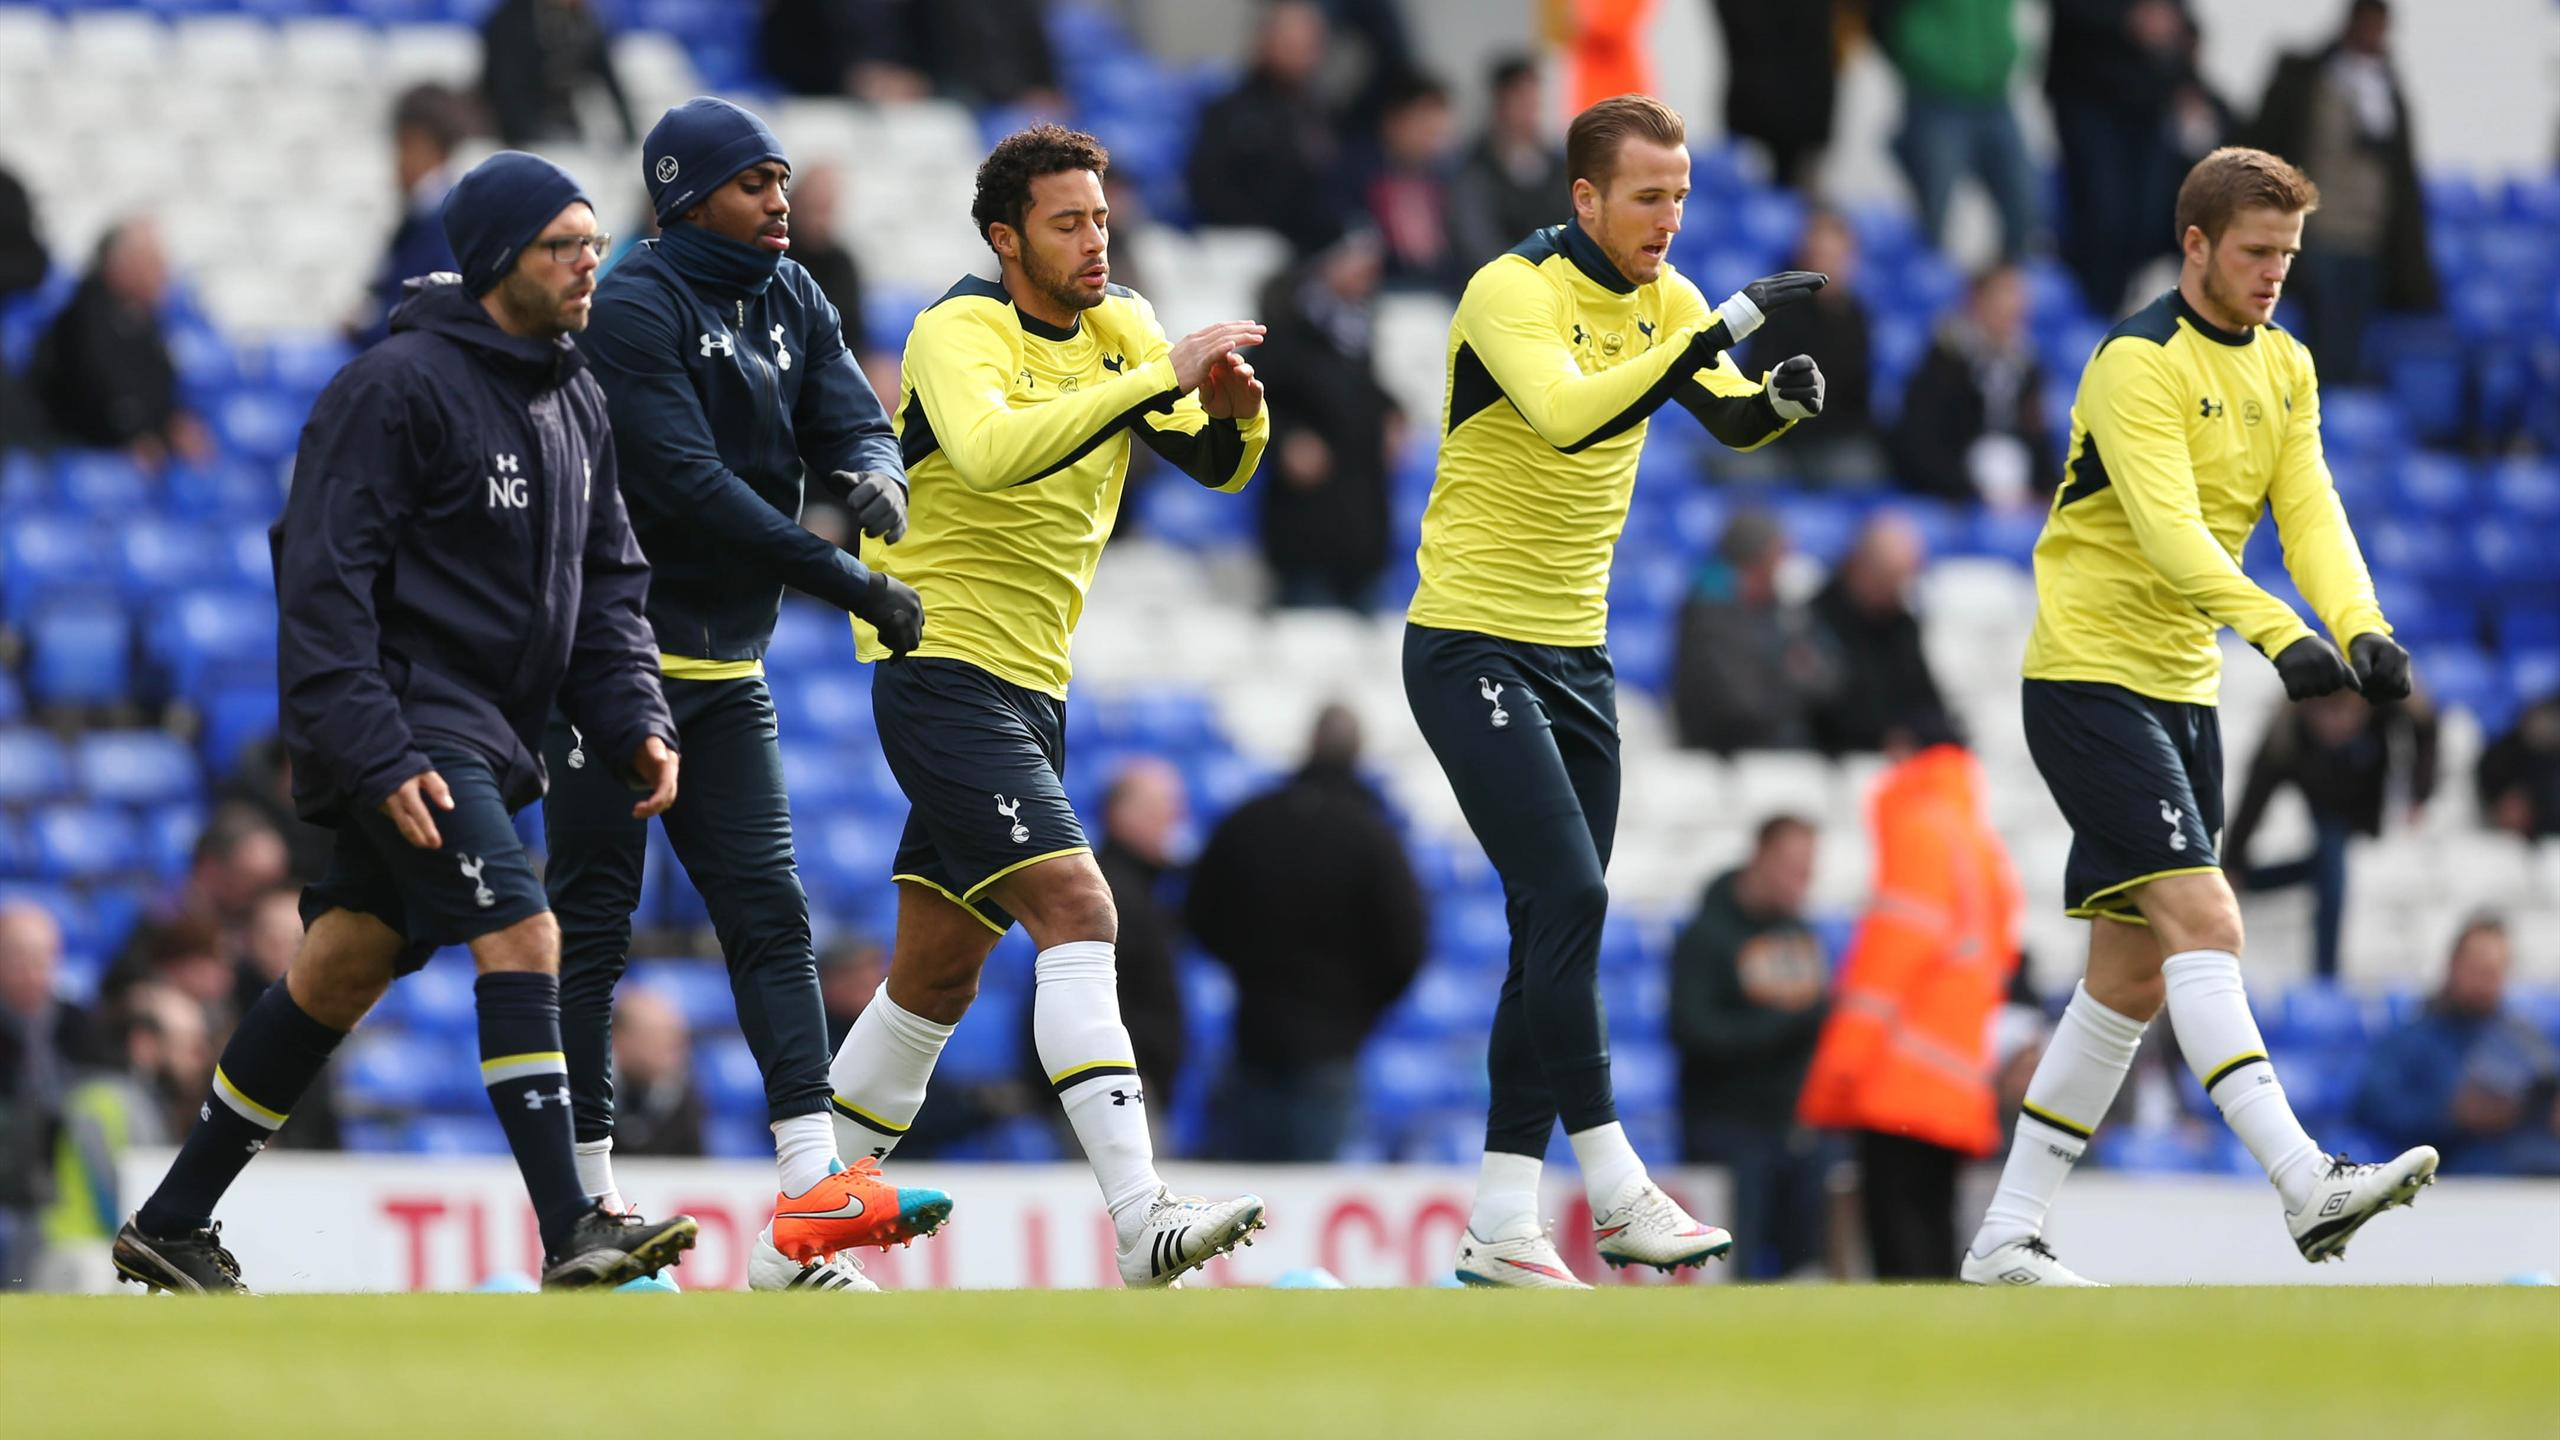 Tottenham's Eric Dier (R), Harry Kane, Mousa Dembele (C) and Danny Rose (2nd L) warm up